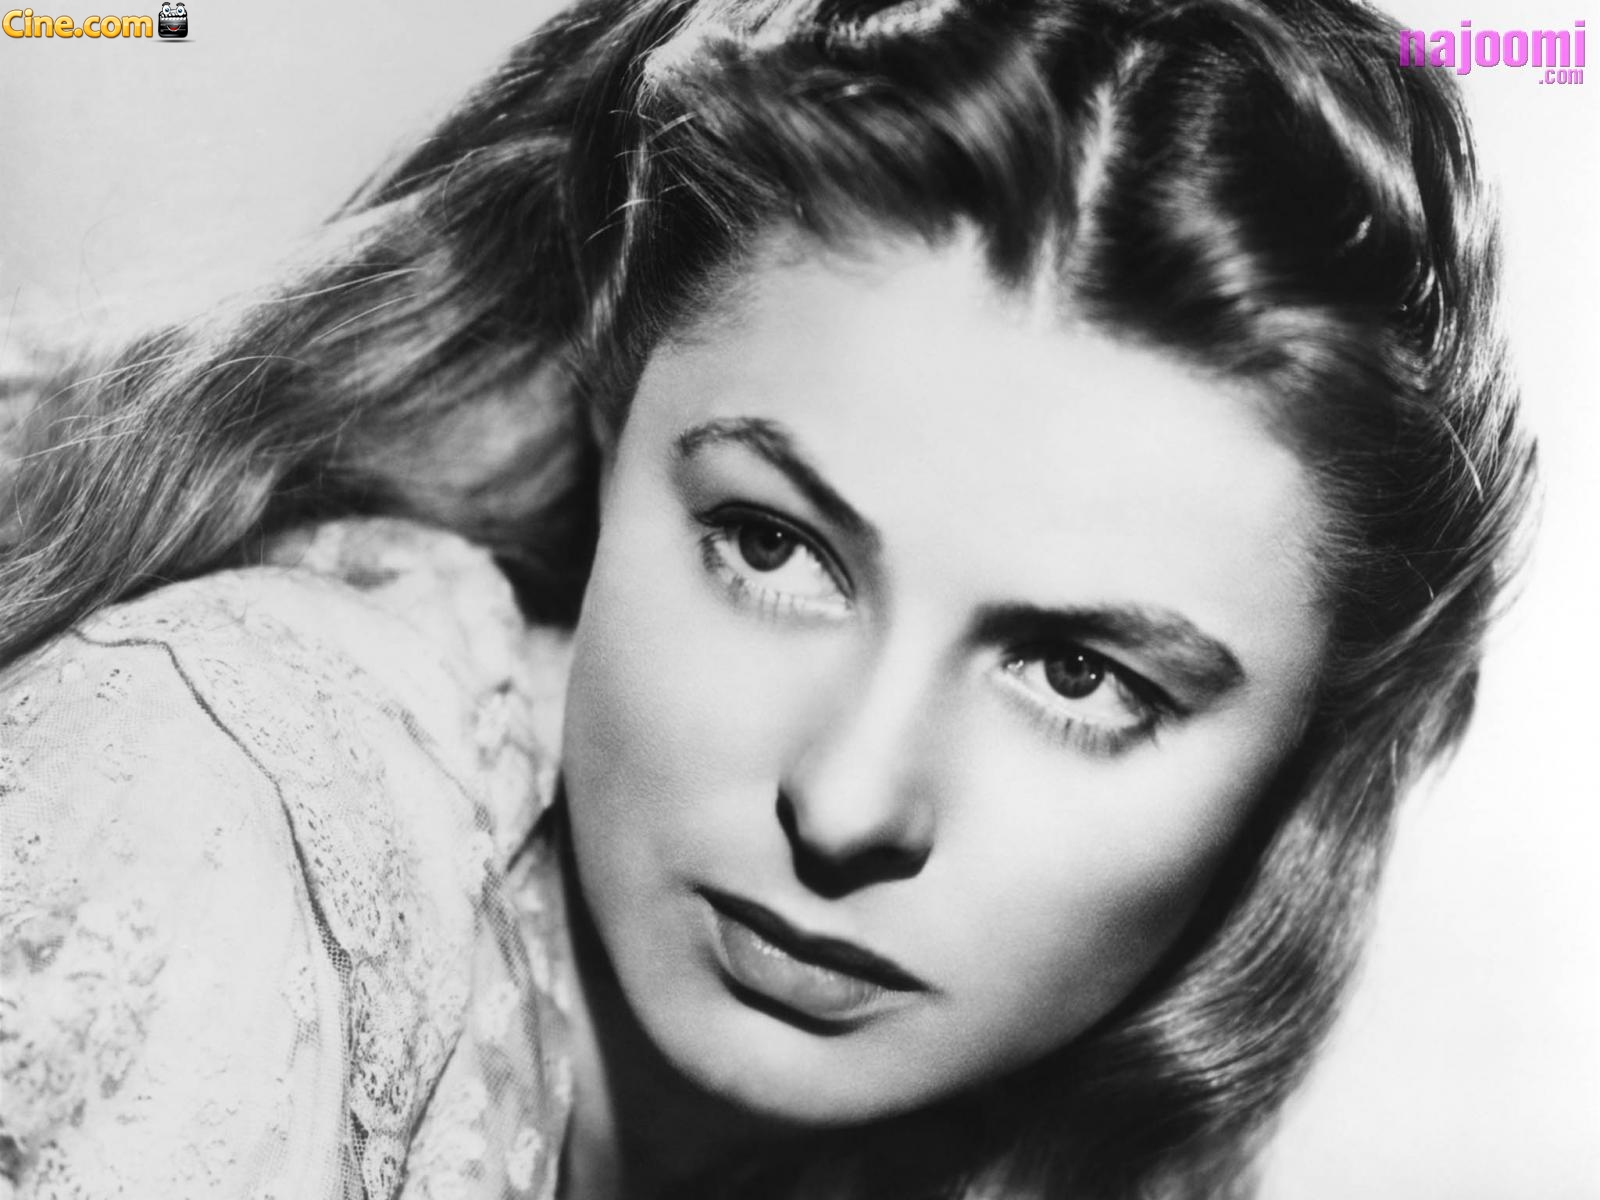 Wallpaper de Ingrid Bergman   CINECOM 1600x1200